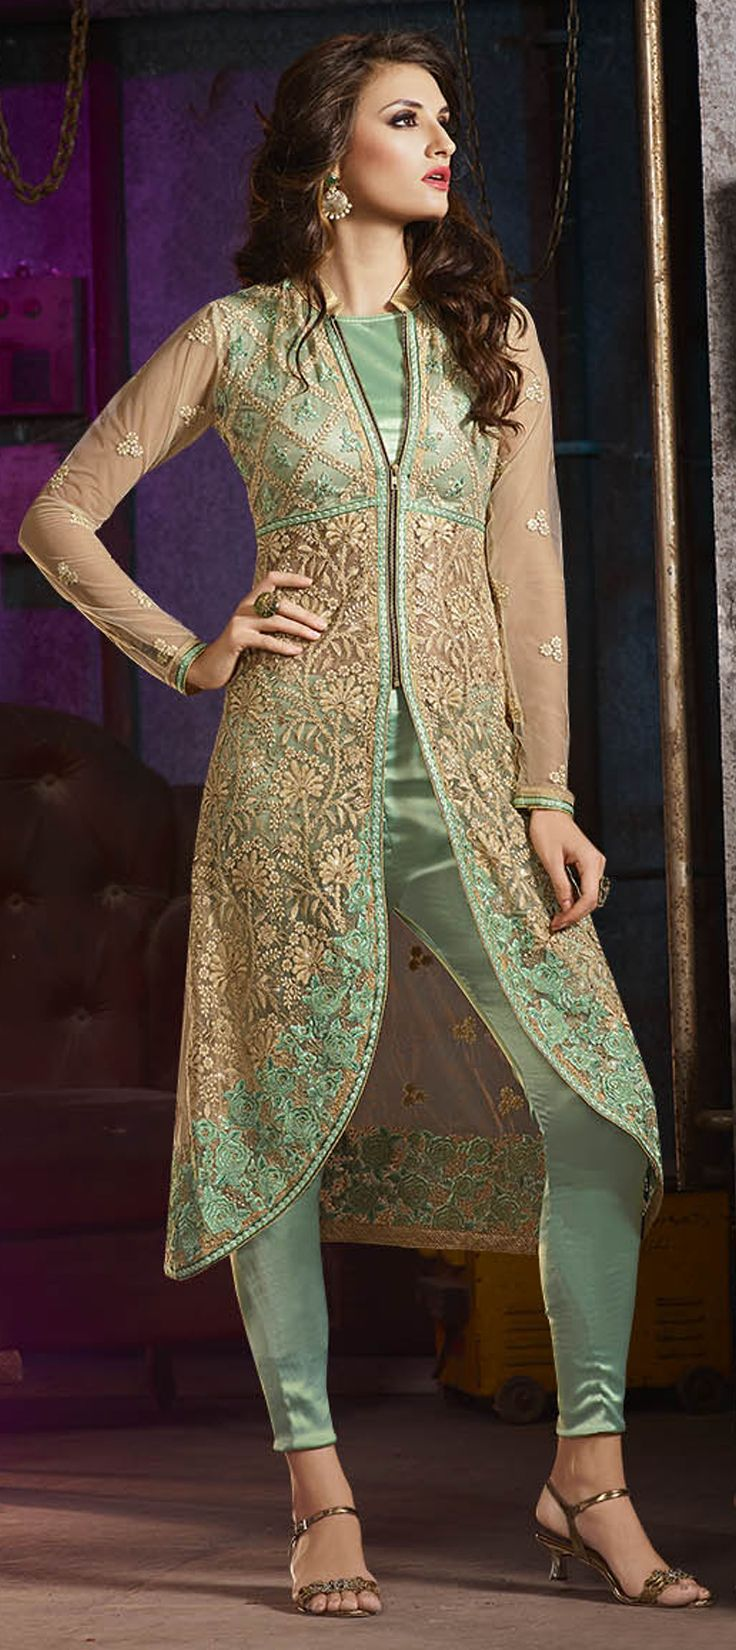 c0cc53b82d 472072: Beige and Brown, Green color family unstitched Party Wear Salwar  Kameez…